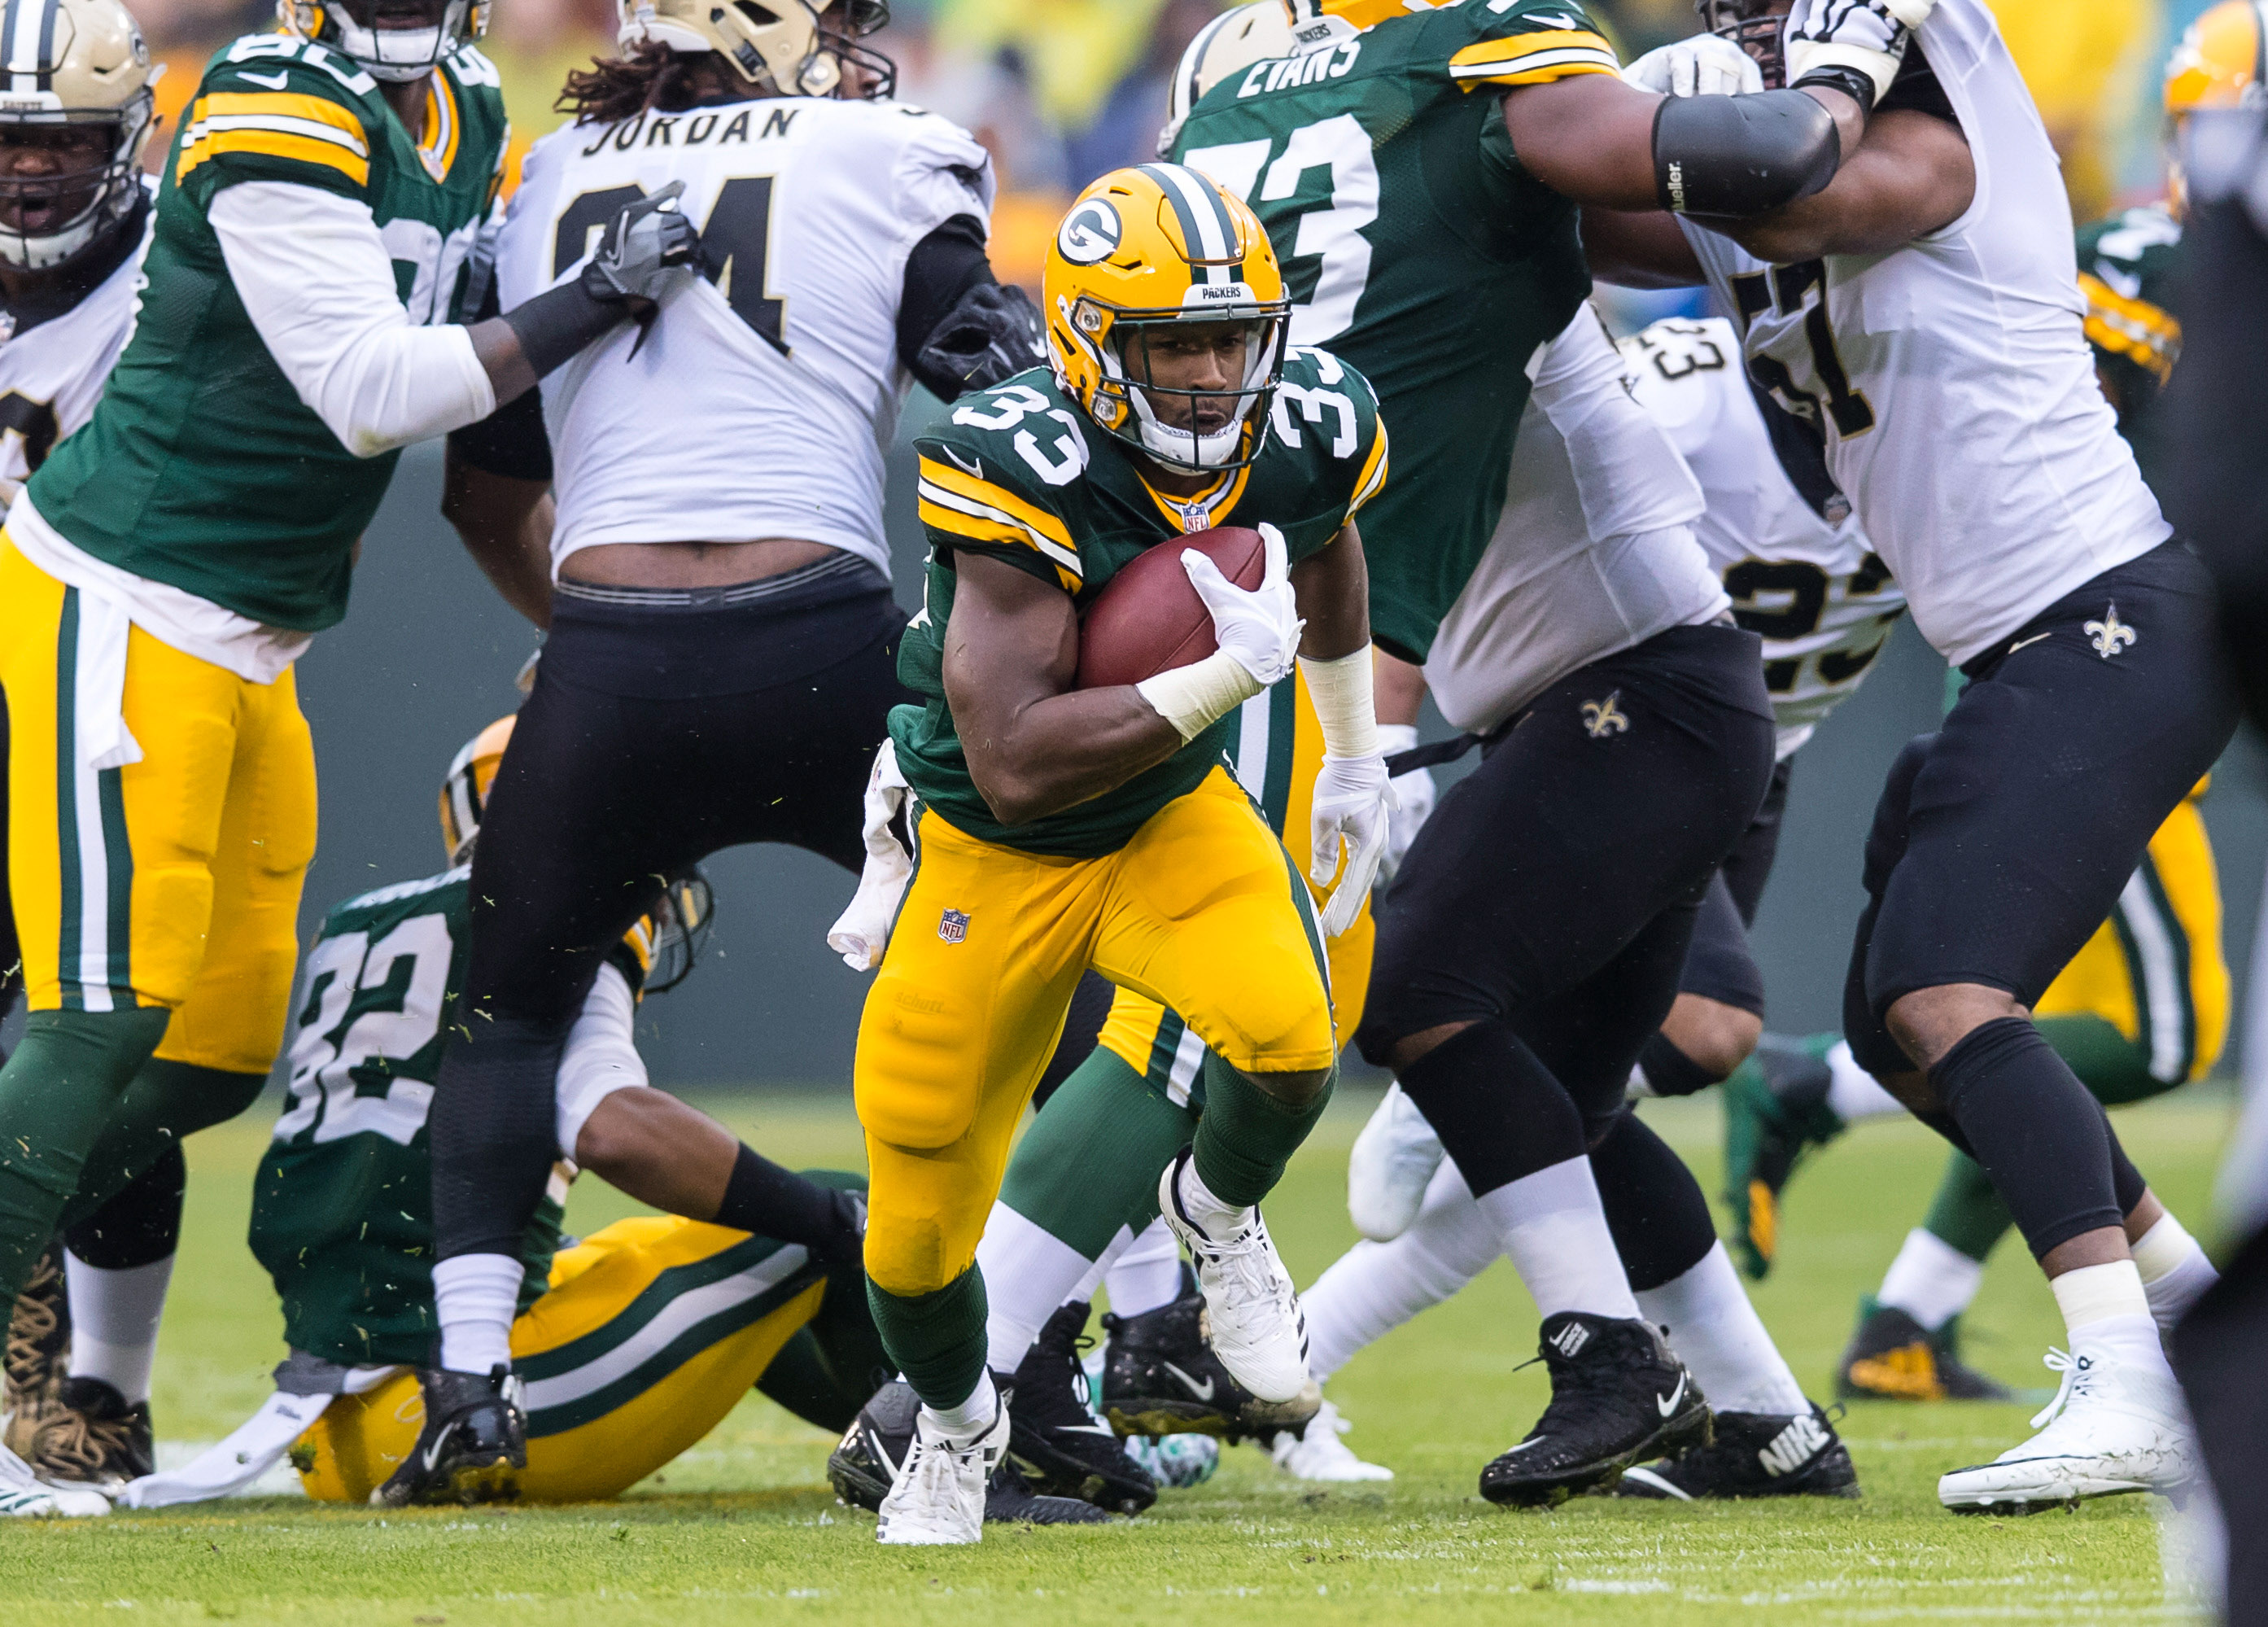 Six Key Factors That Will Determine the Winner of Packers vs Saints